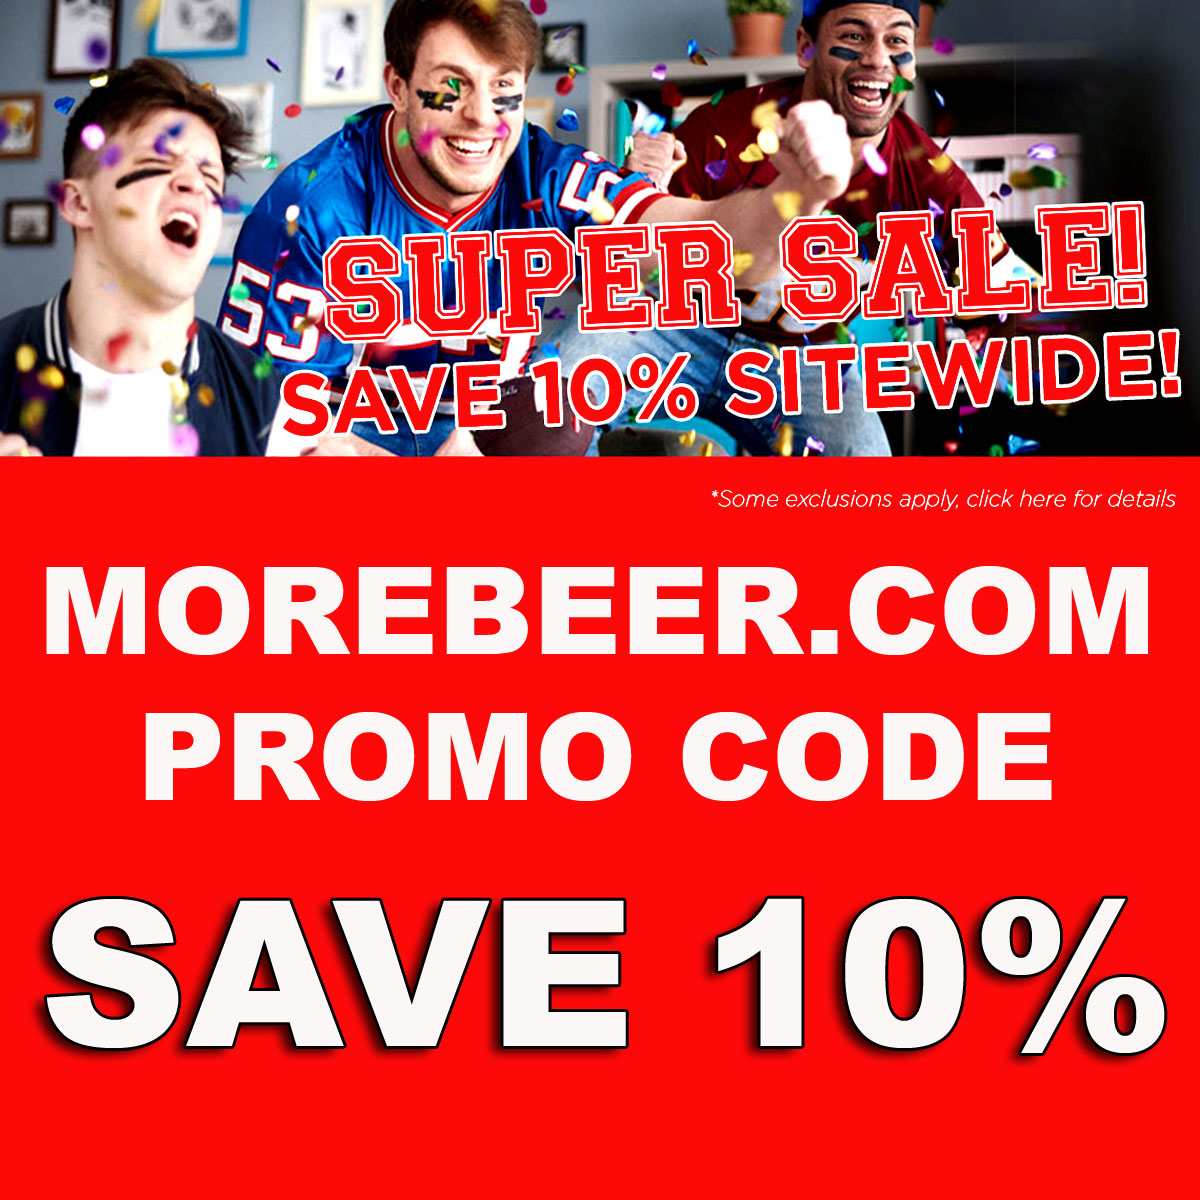 Use this MoreBeer.com coupon code and save 10% sitewide plus get Free Shipping on orders over $59 Coupon Code